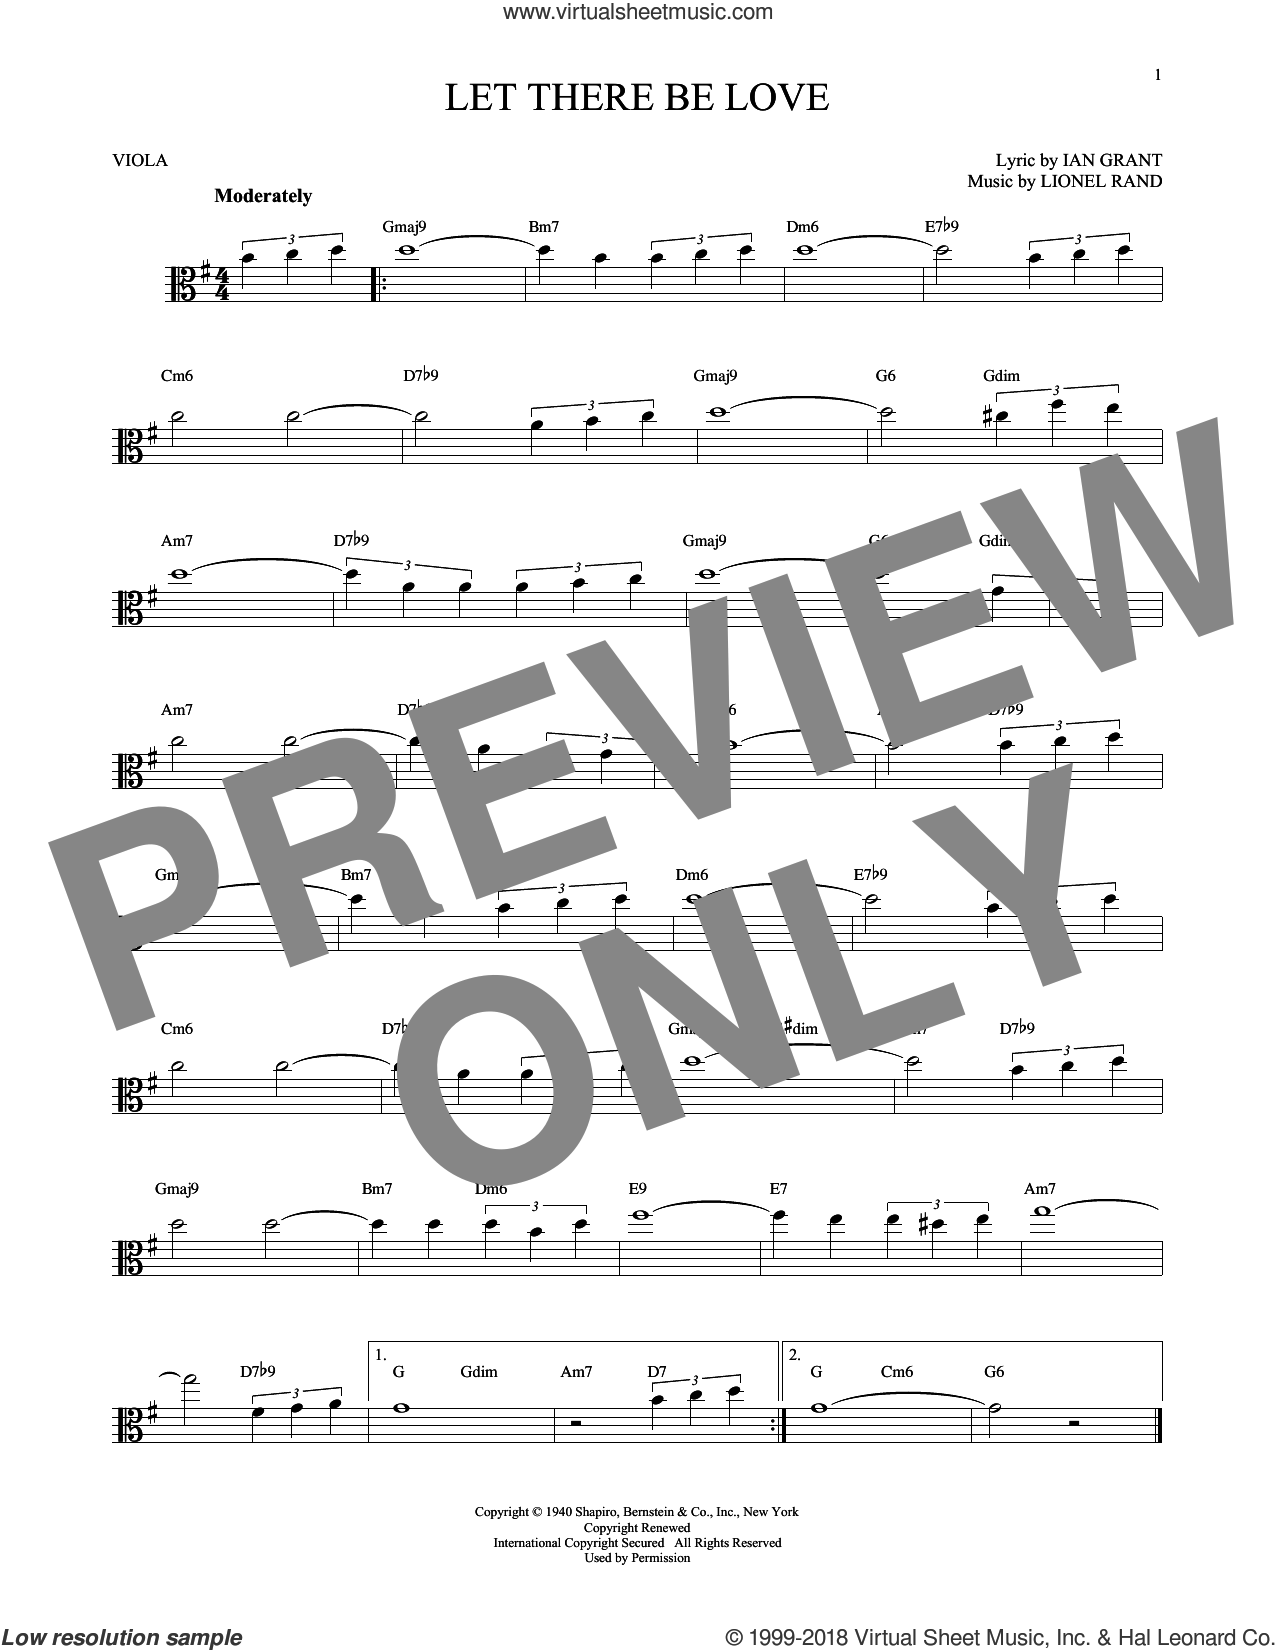 Let There Be Love sheet music for viola solo by Ian Grant and Lionel Rand, intermediate skill level